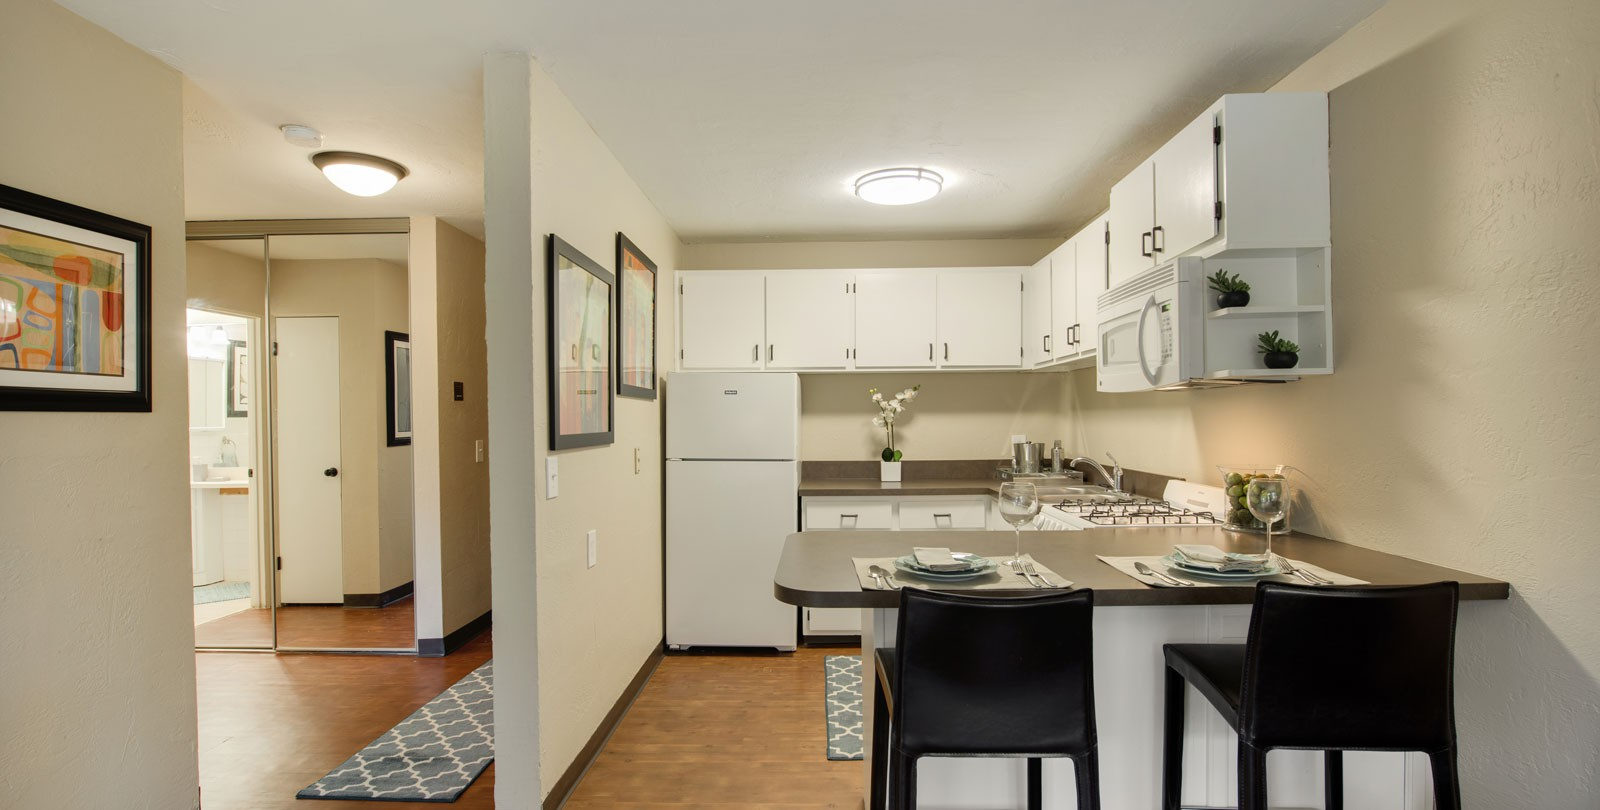 Apartments Near Capella Ridgewood Arches for Capella University Students in Minneapolis, MN